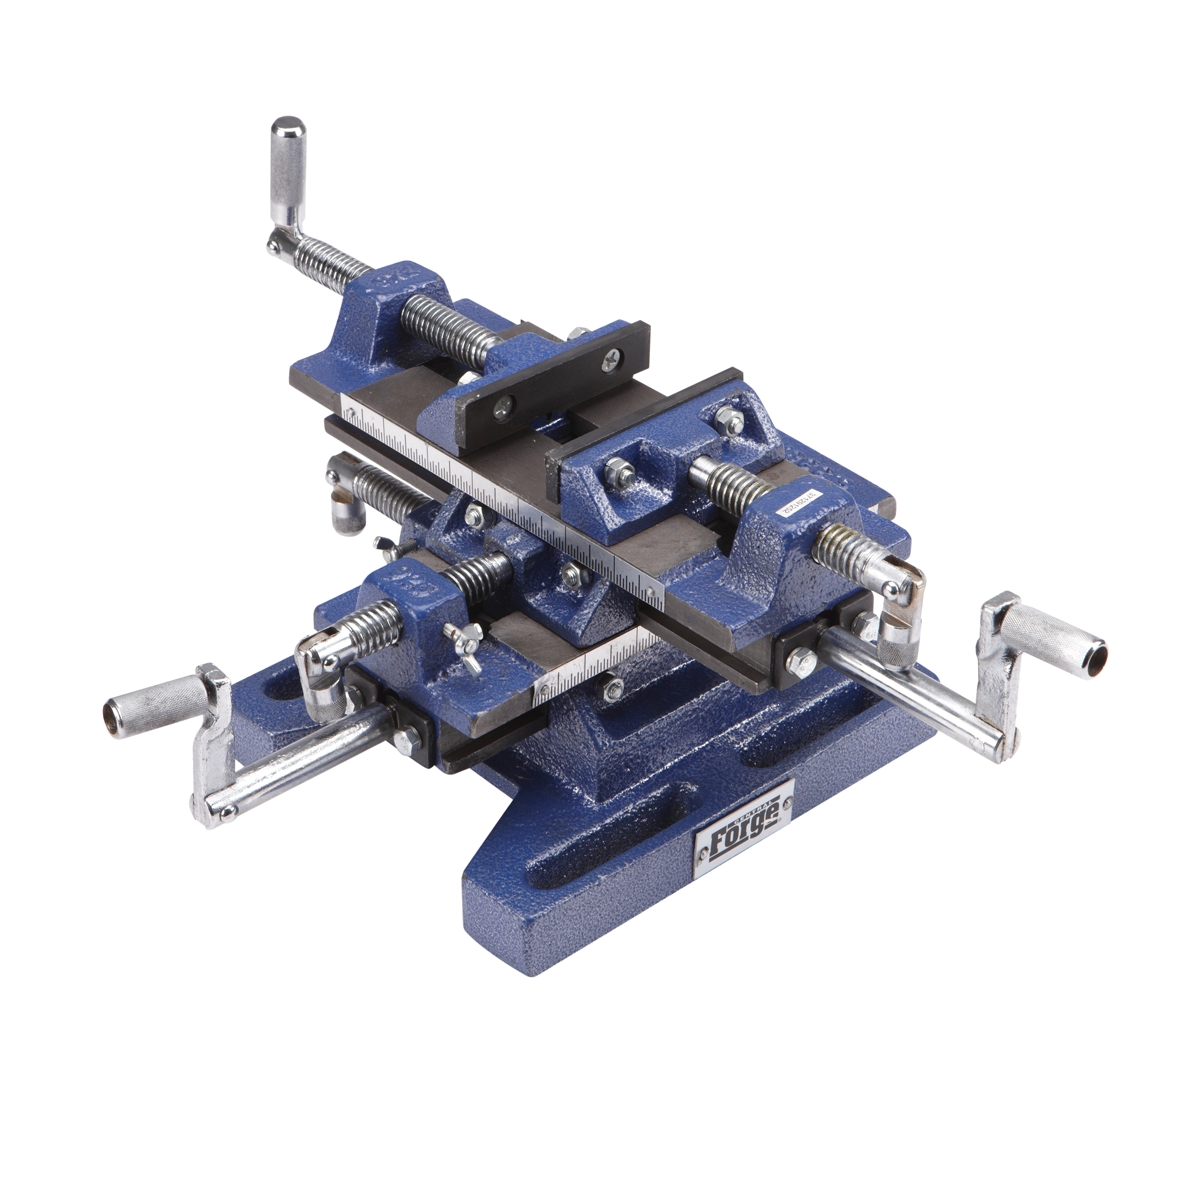 Harbor Freight Bench Vise 5 In Rugged Cast Iron Drill Press Milling Vise